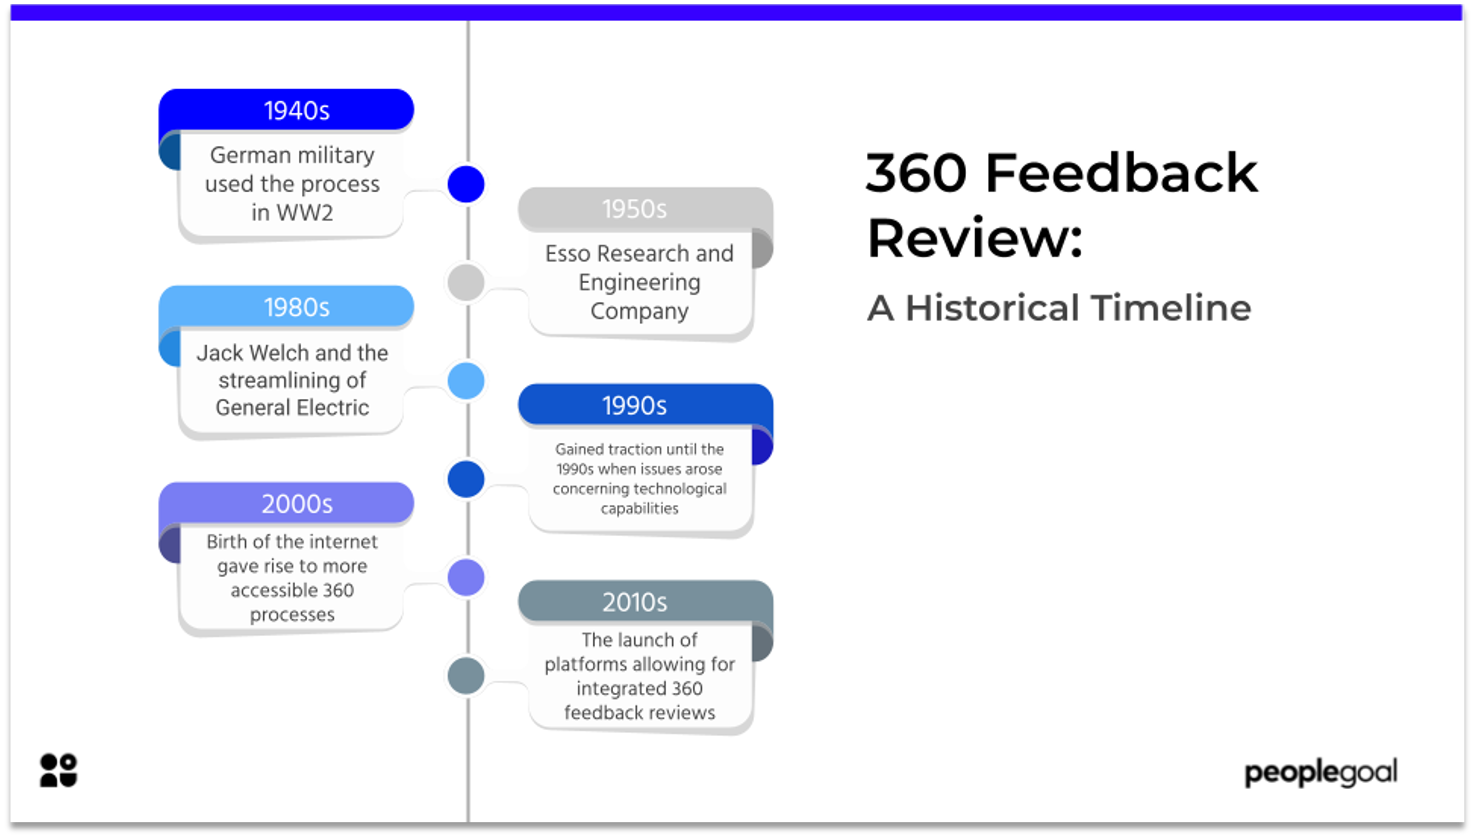 360 feedback review a historical timeline